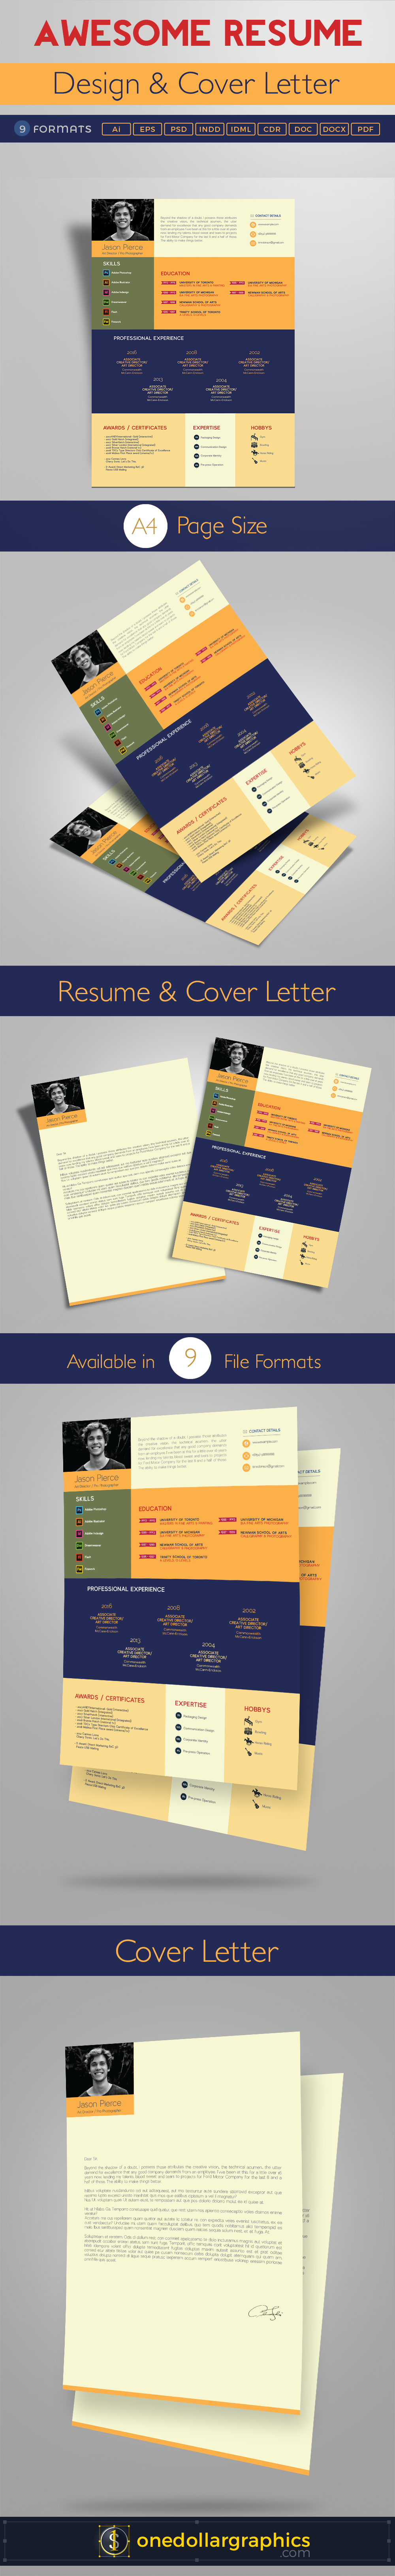 awesome resume  cv  design  cover letter template  4 psd mock